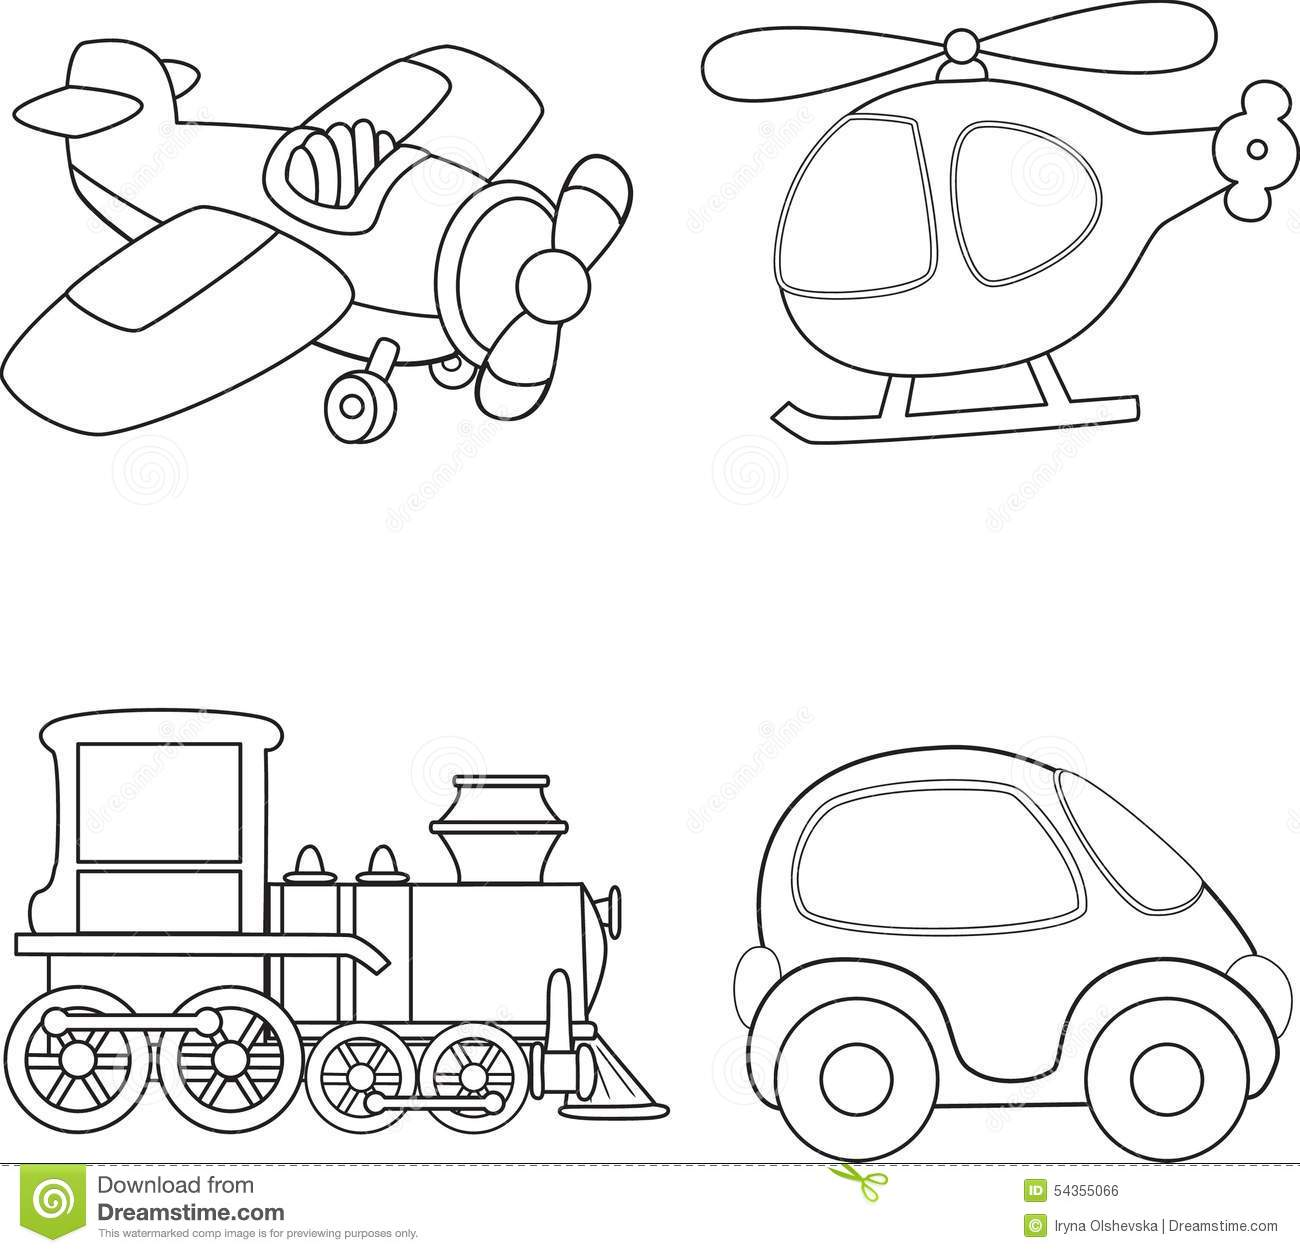 coloring pages trains transportation - photo#45